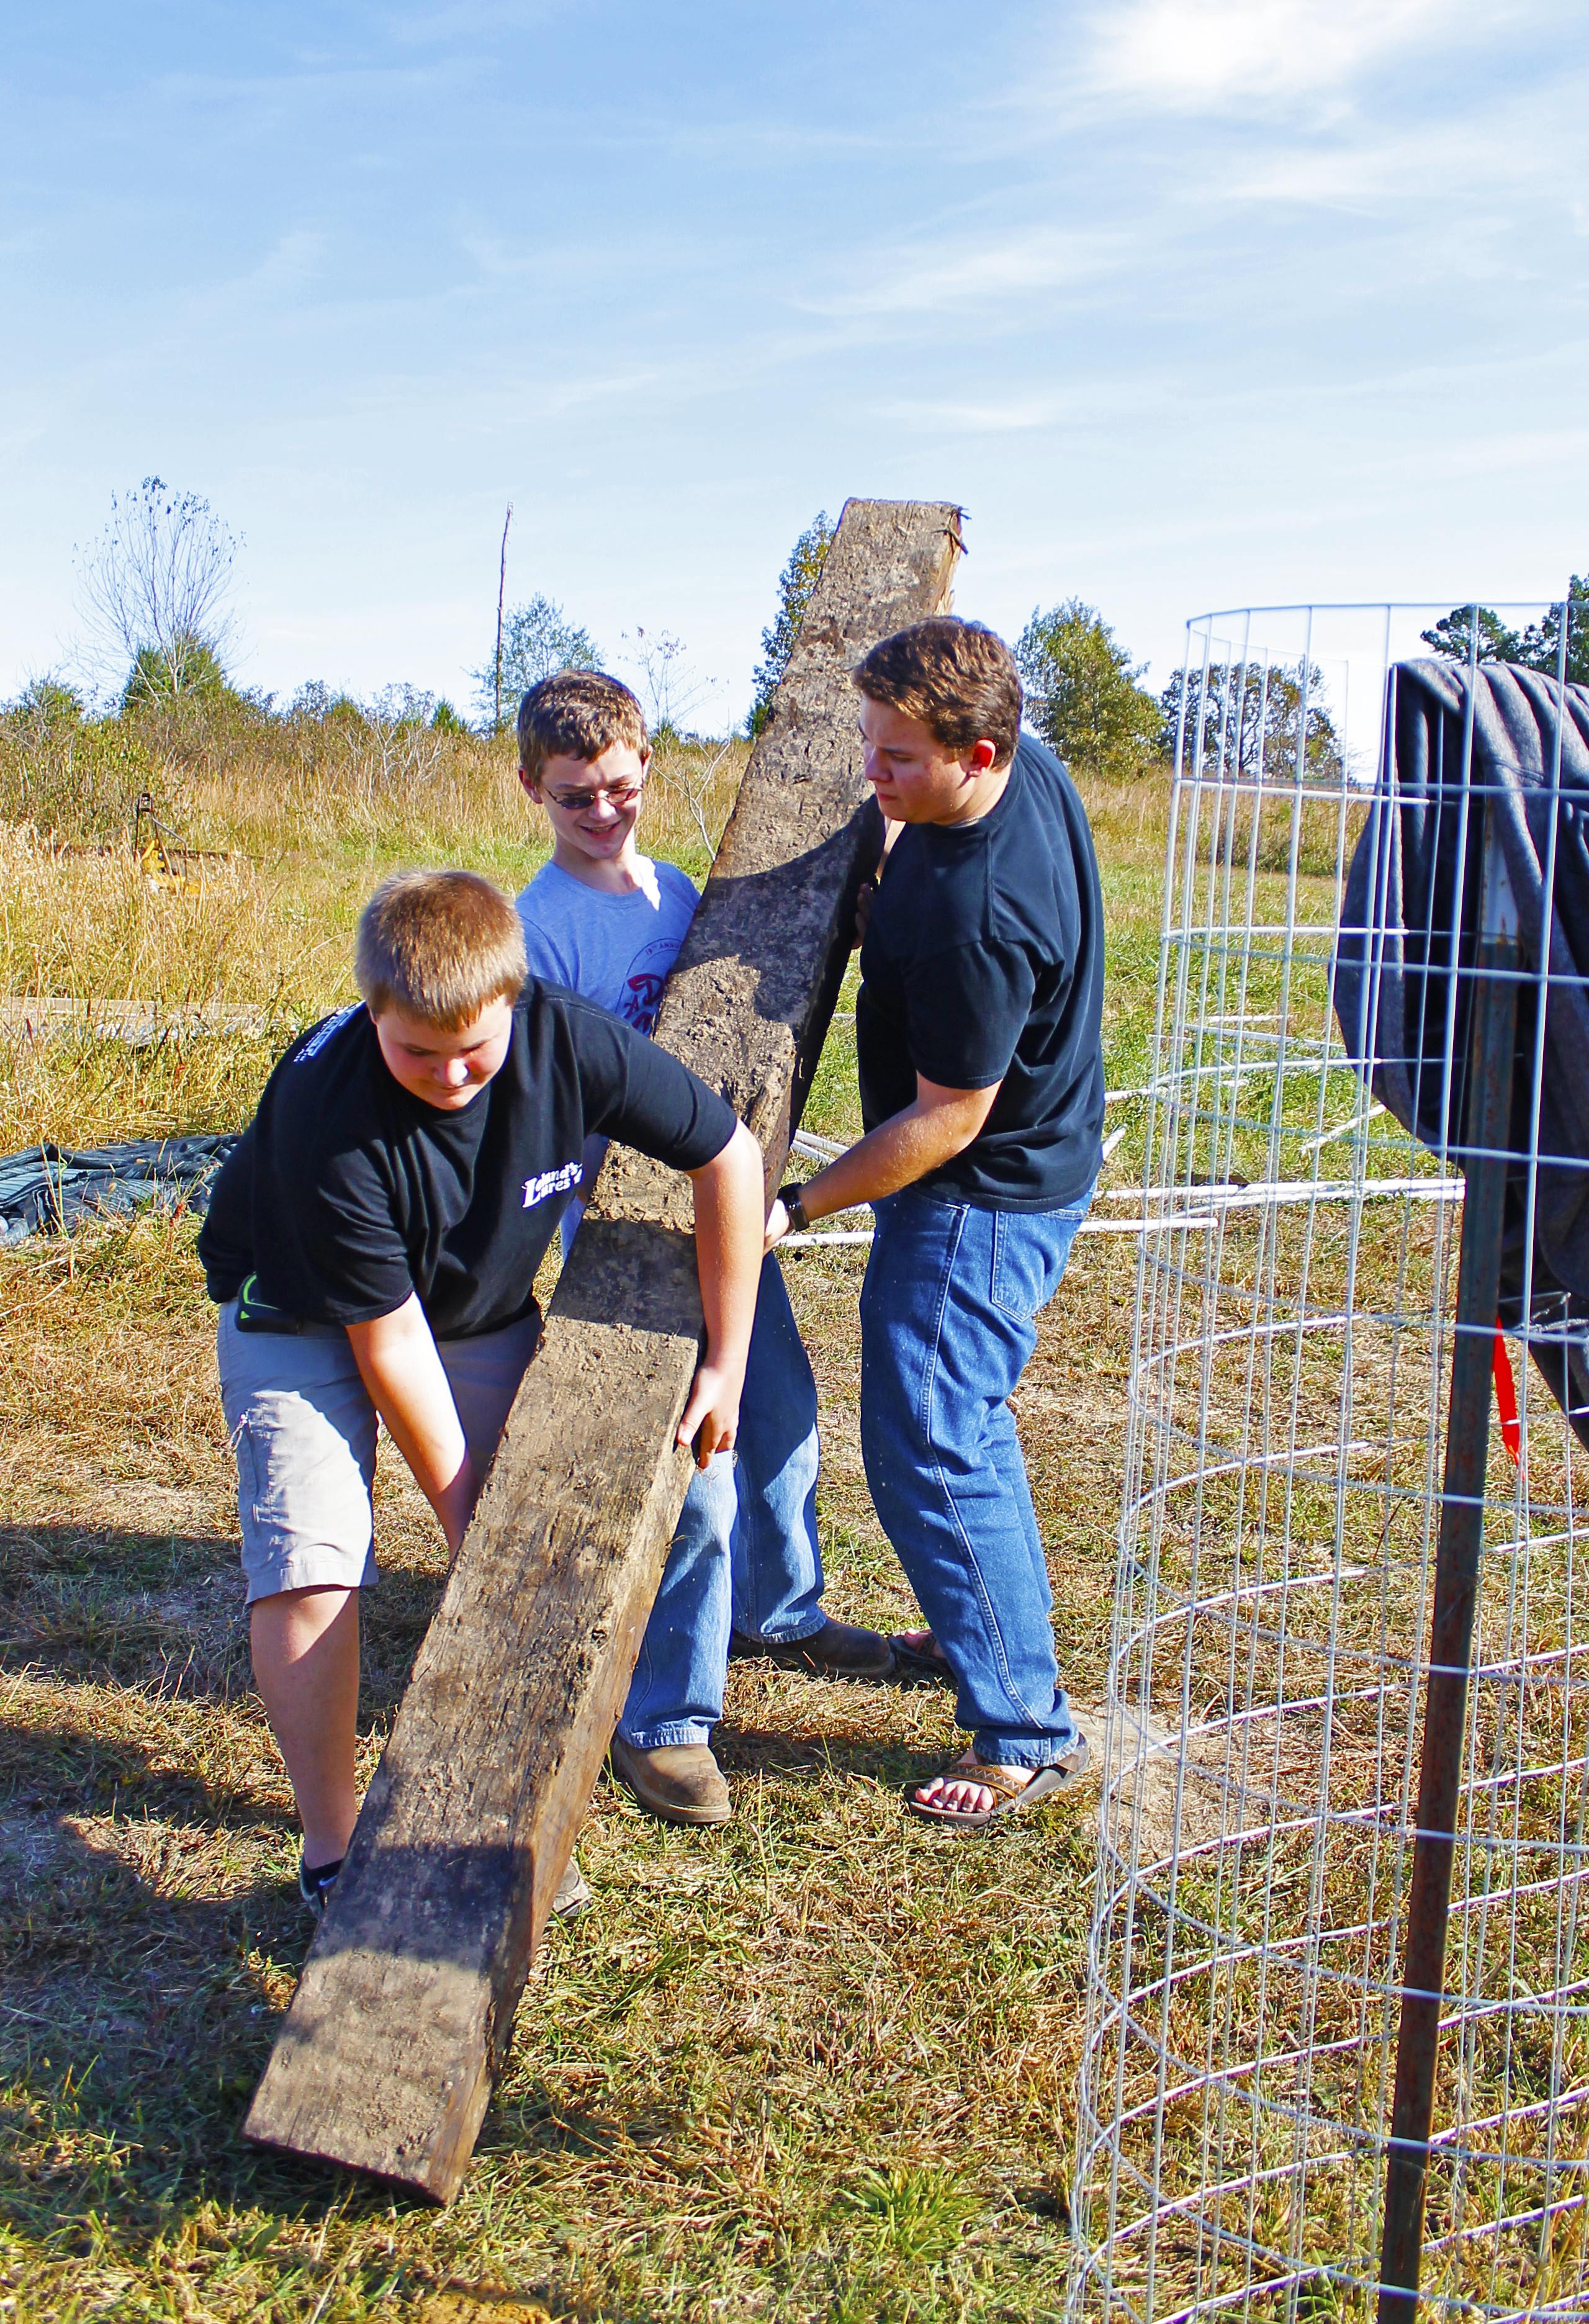 Several visiting youth put finishing touches on a fence while learning about global agricultural practices.